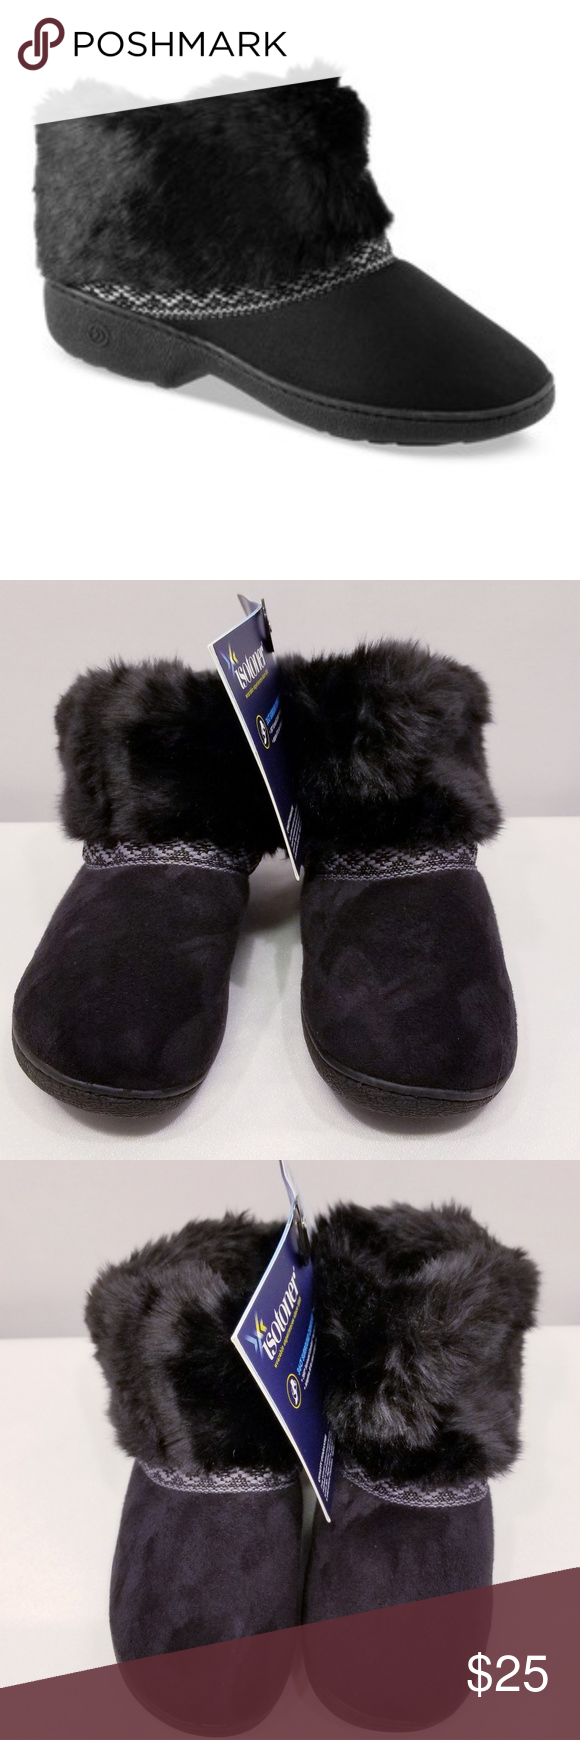 98e179013 ISOTONER Microsuede Basil Boot Slippers Jet black with design embroidered  strips across the front ankle.